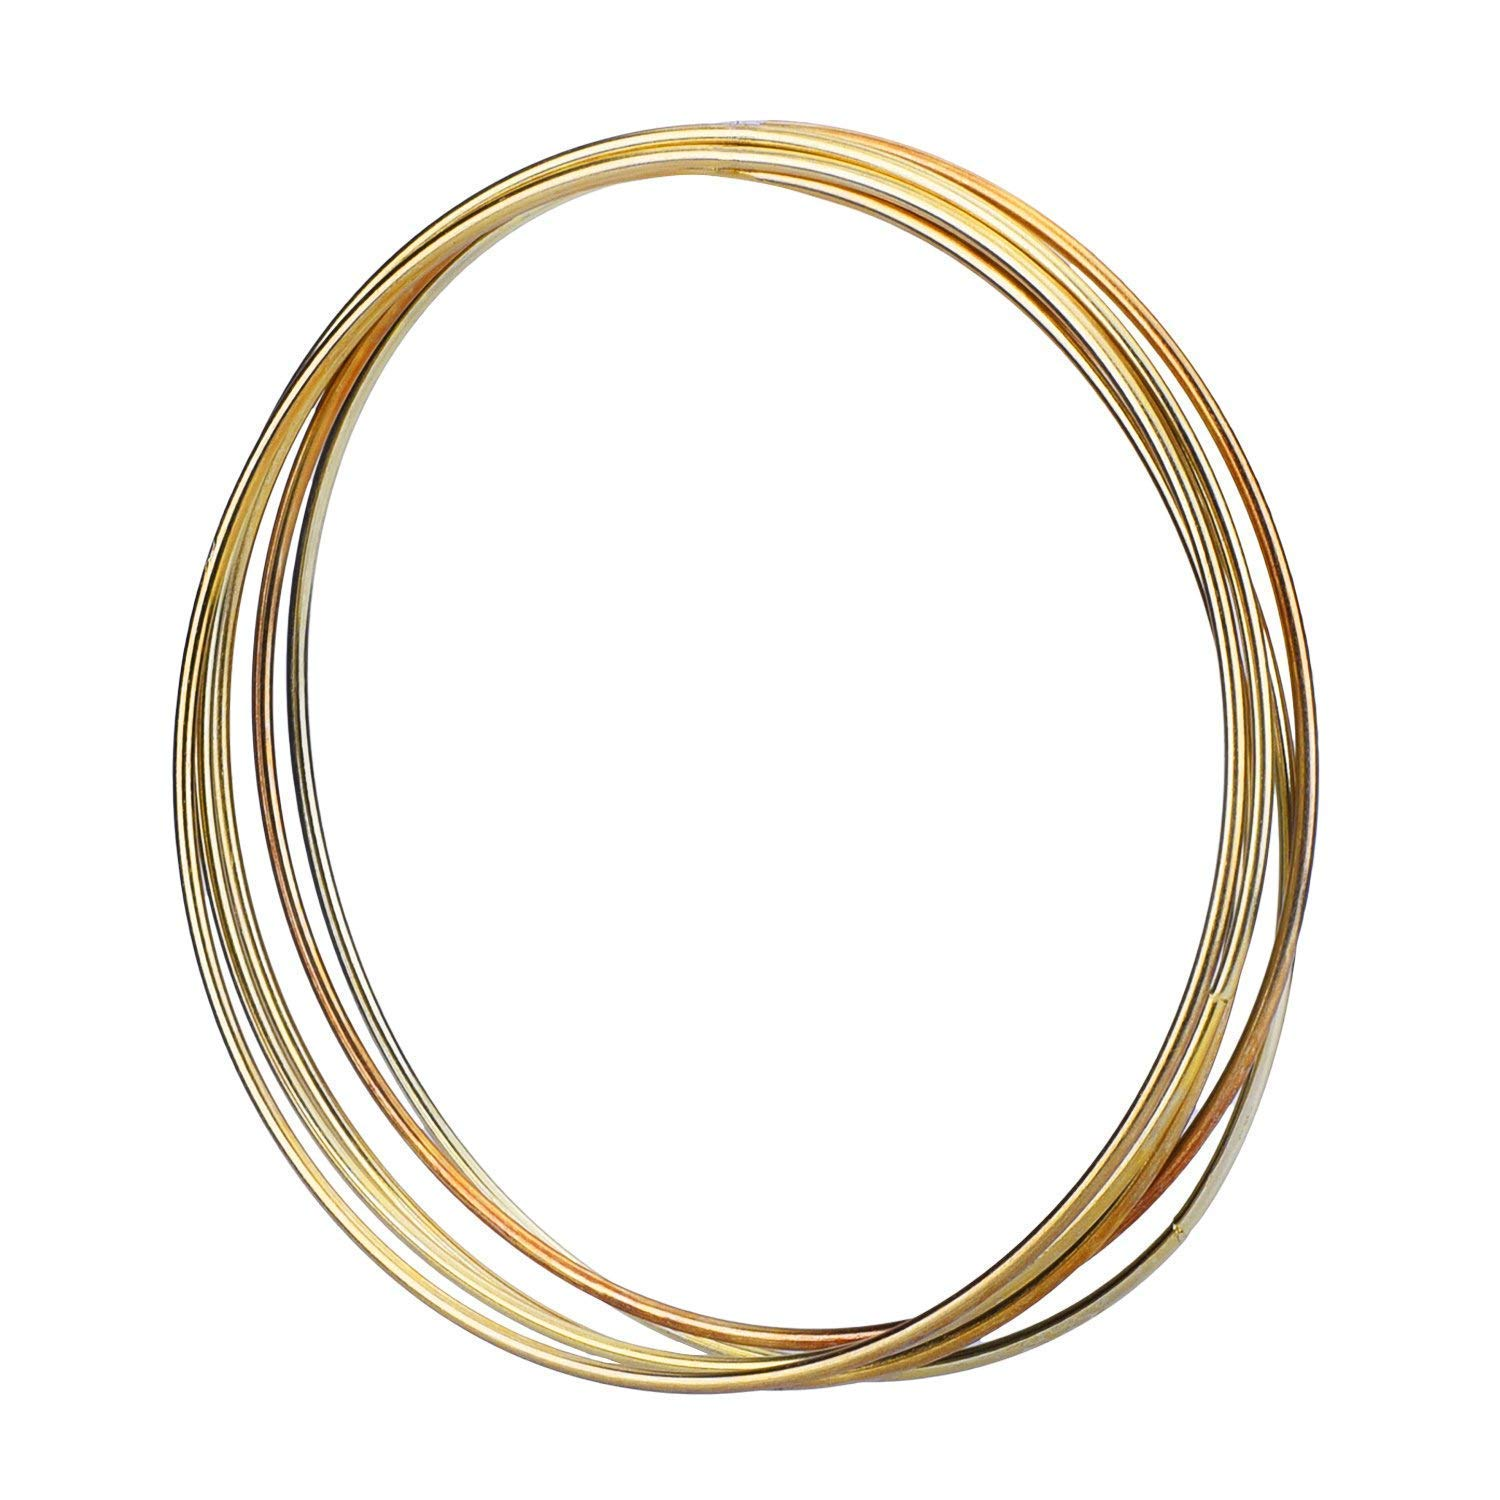 Erica 5 Pack Gold Metal Rings Hoops Macrame Rings for Dream Catcher and Crafts (6 inch)